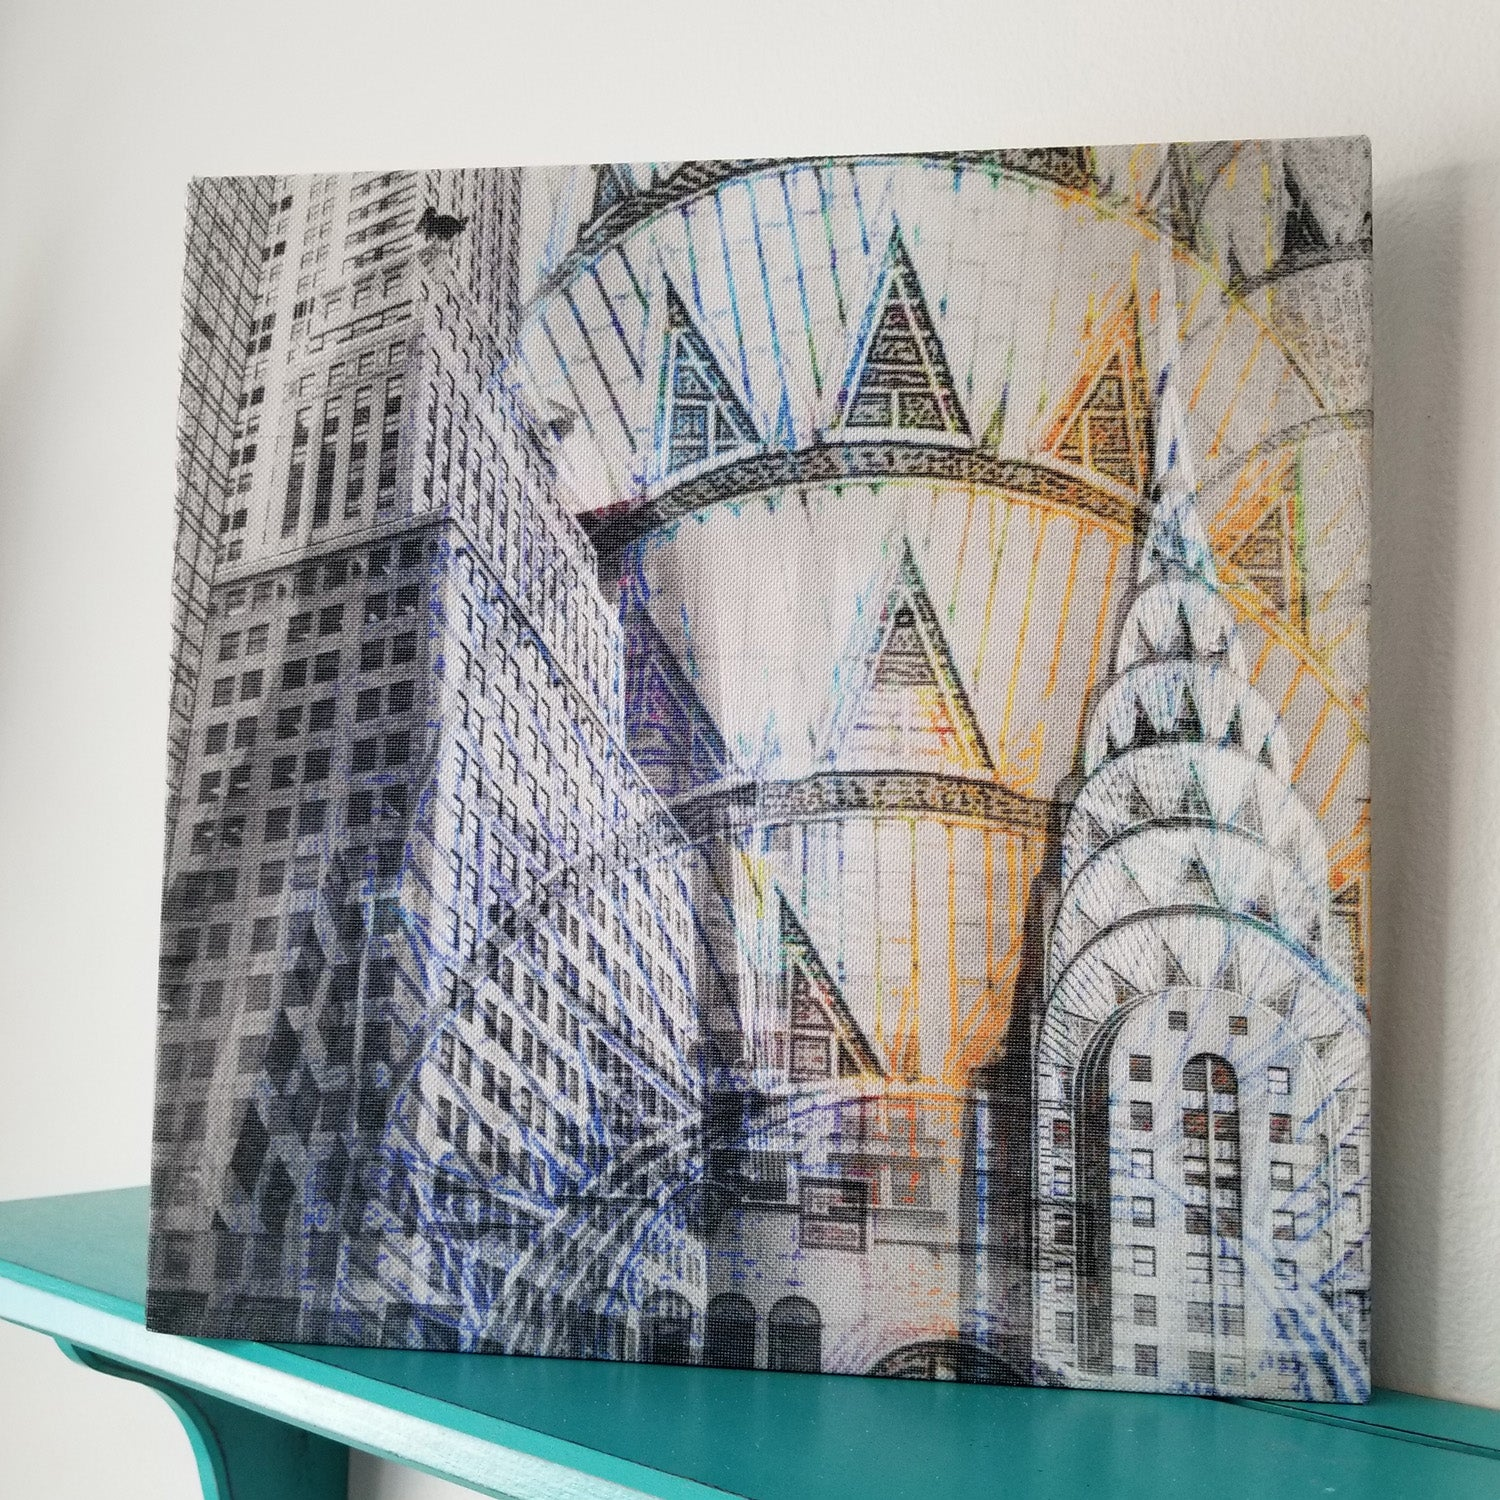 New York 13 Canvas Chrysler Building Photo Collage Wall Art